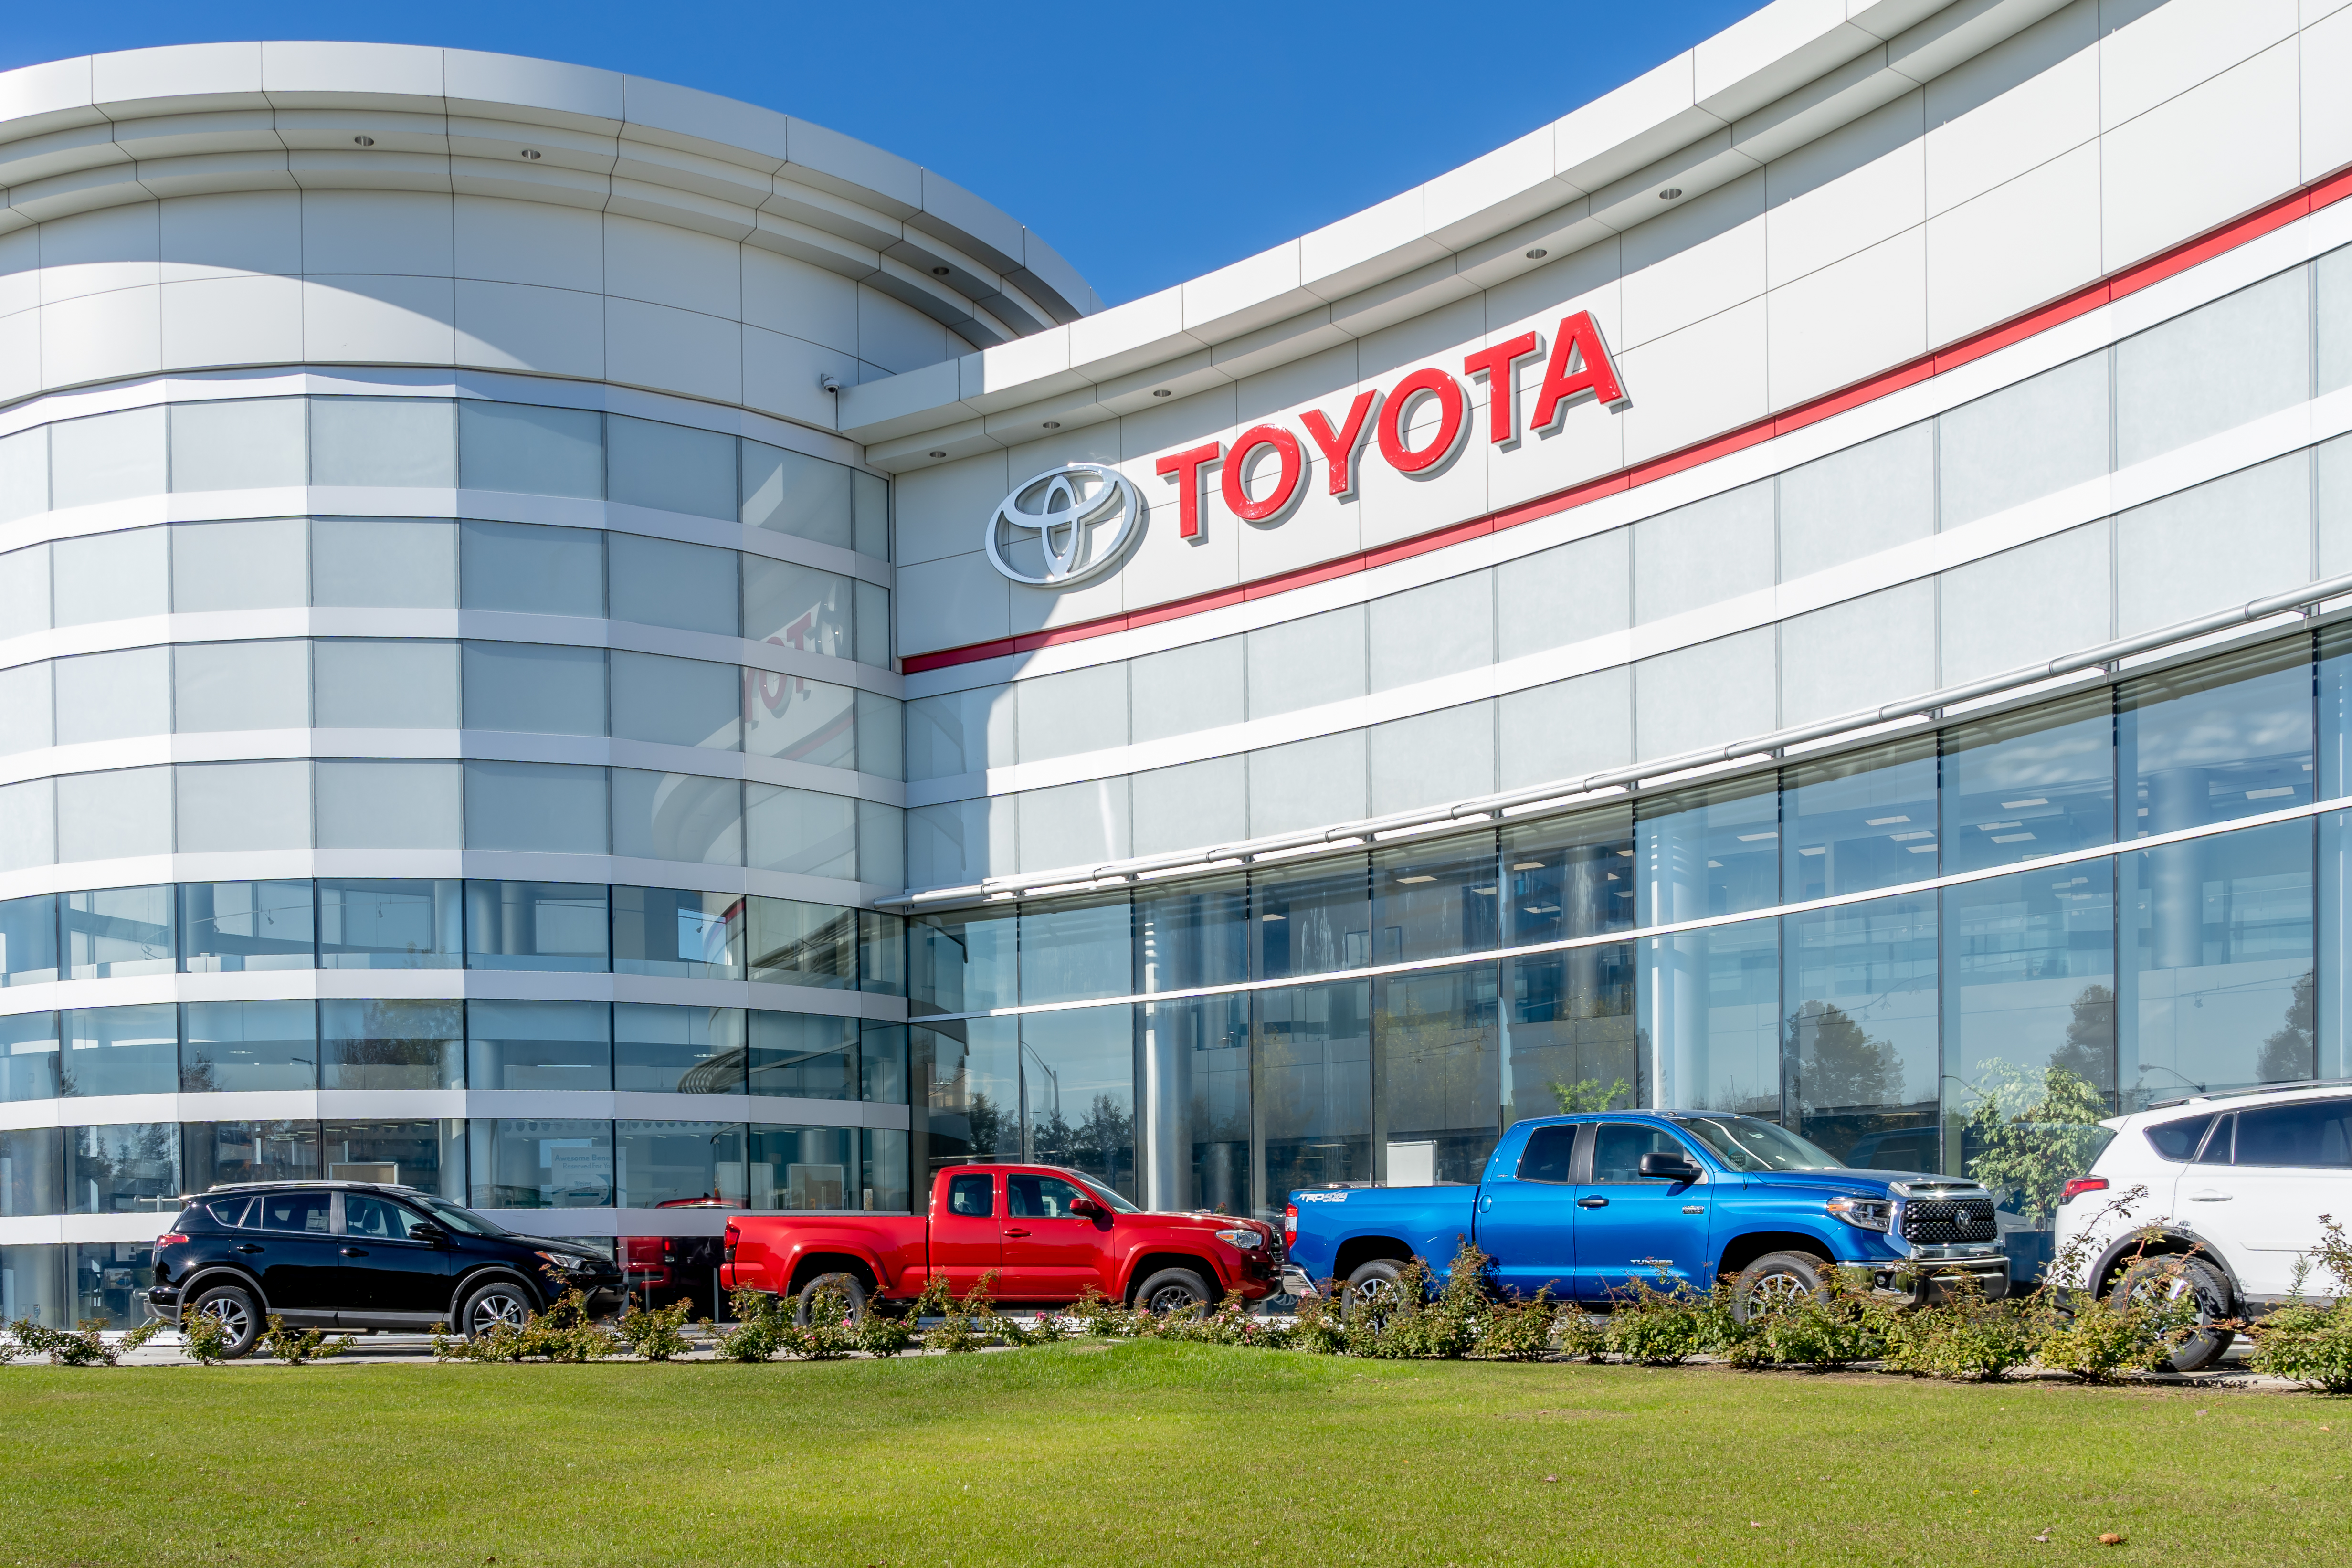 Toyota offers rapid testing to workers